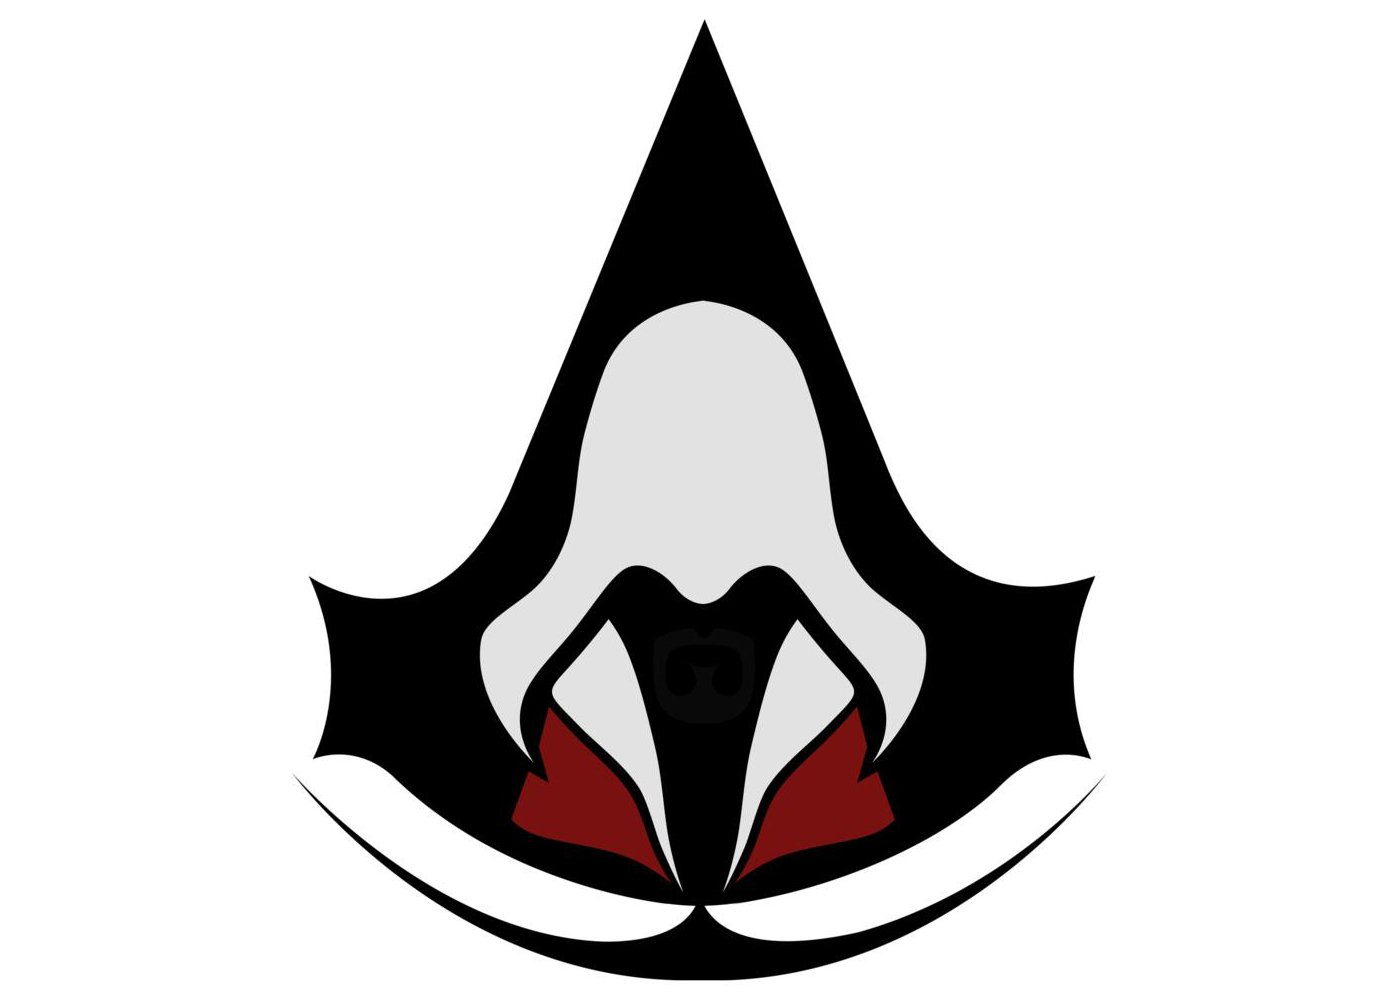 assassins creed logo assassins creed symbol meaning